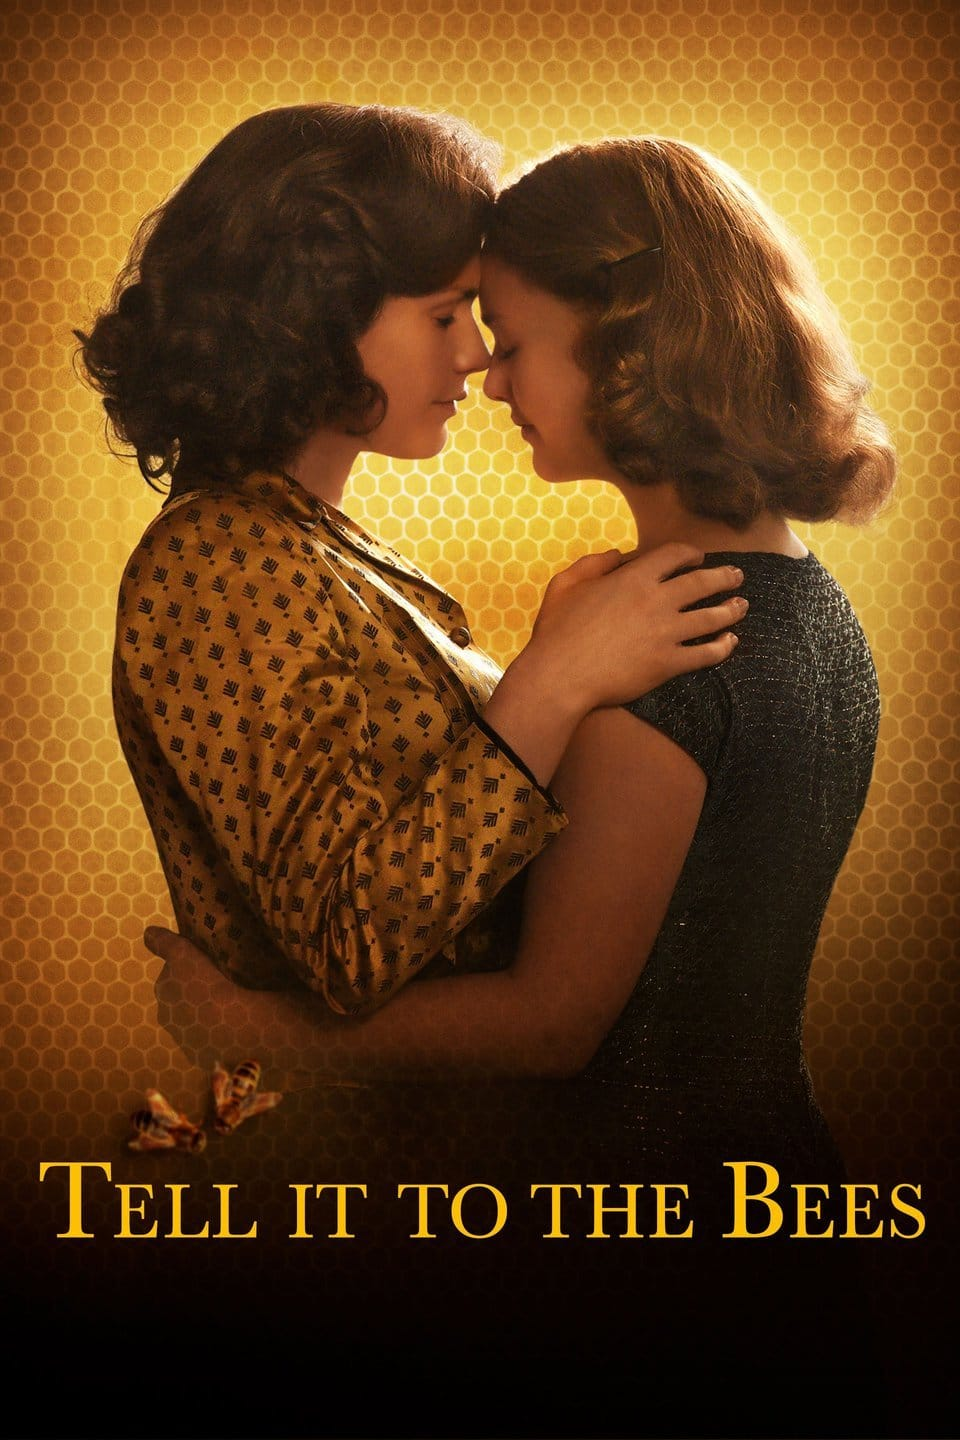 Tell It to the Bees (2018) รักแท้แพ้ ฉิ่ง